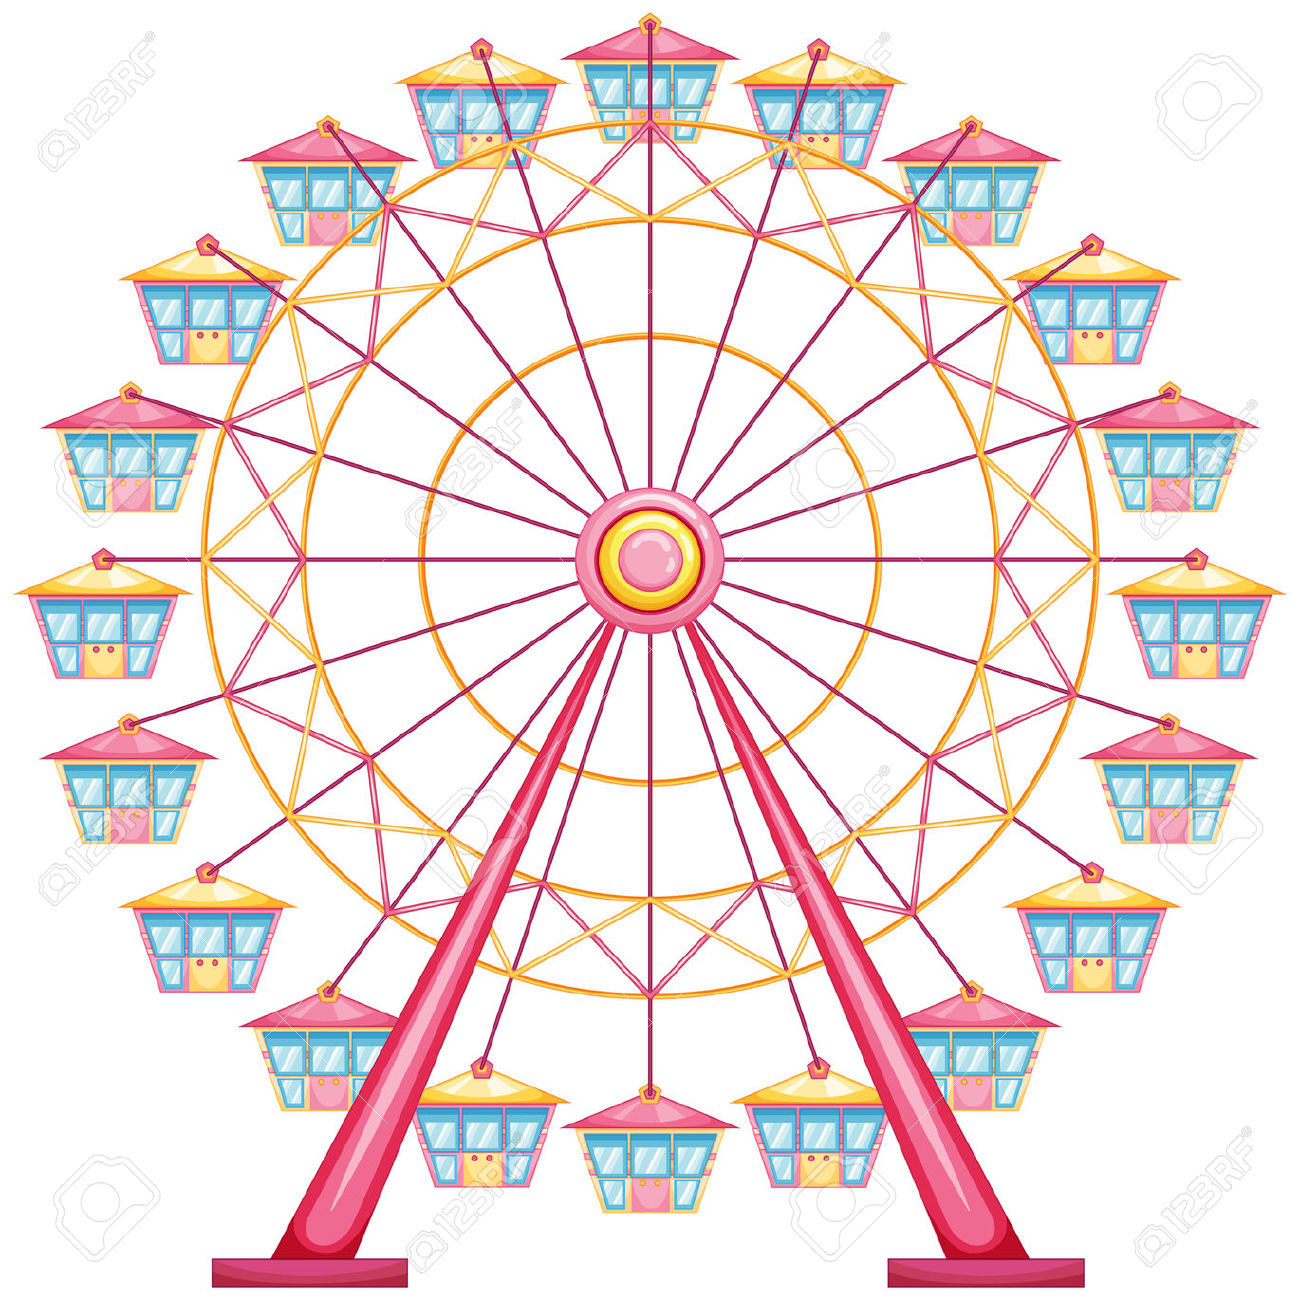 Ferris Wheel clipart #5